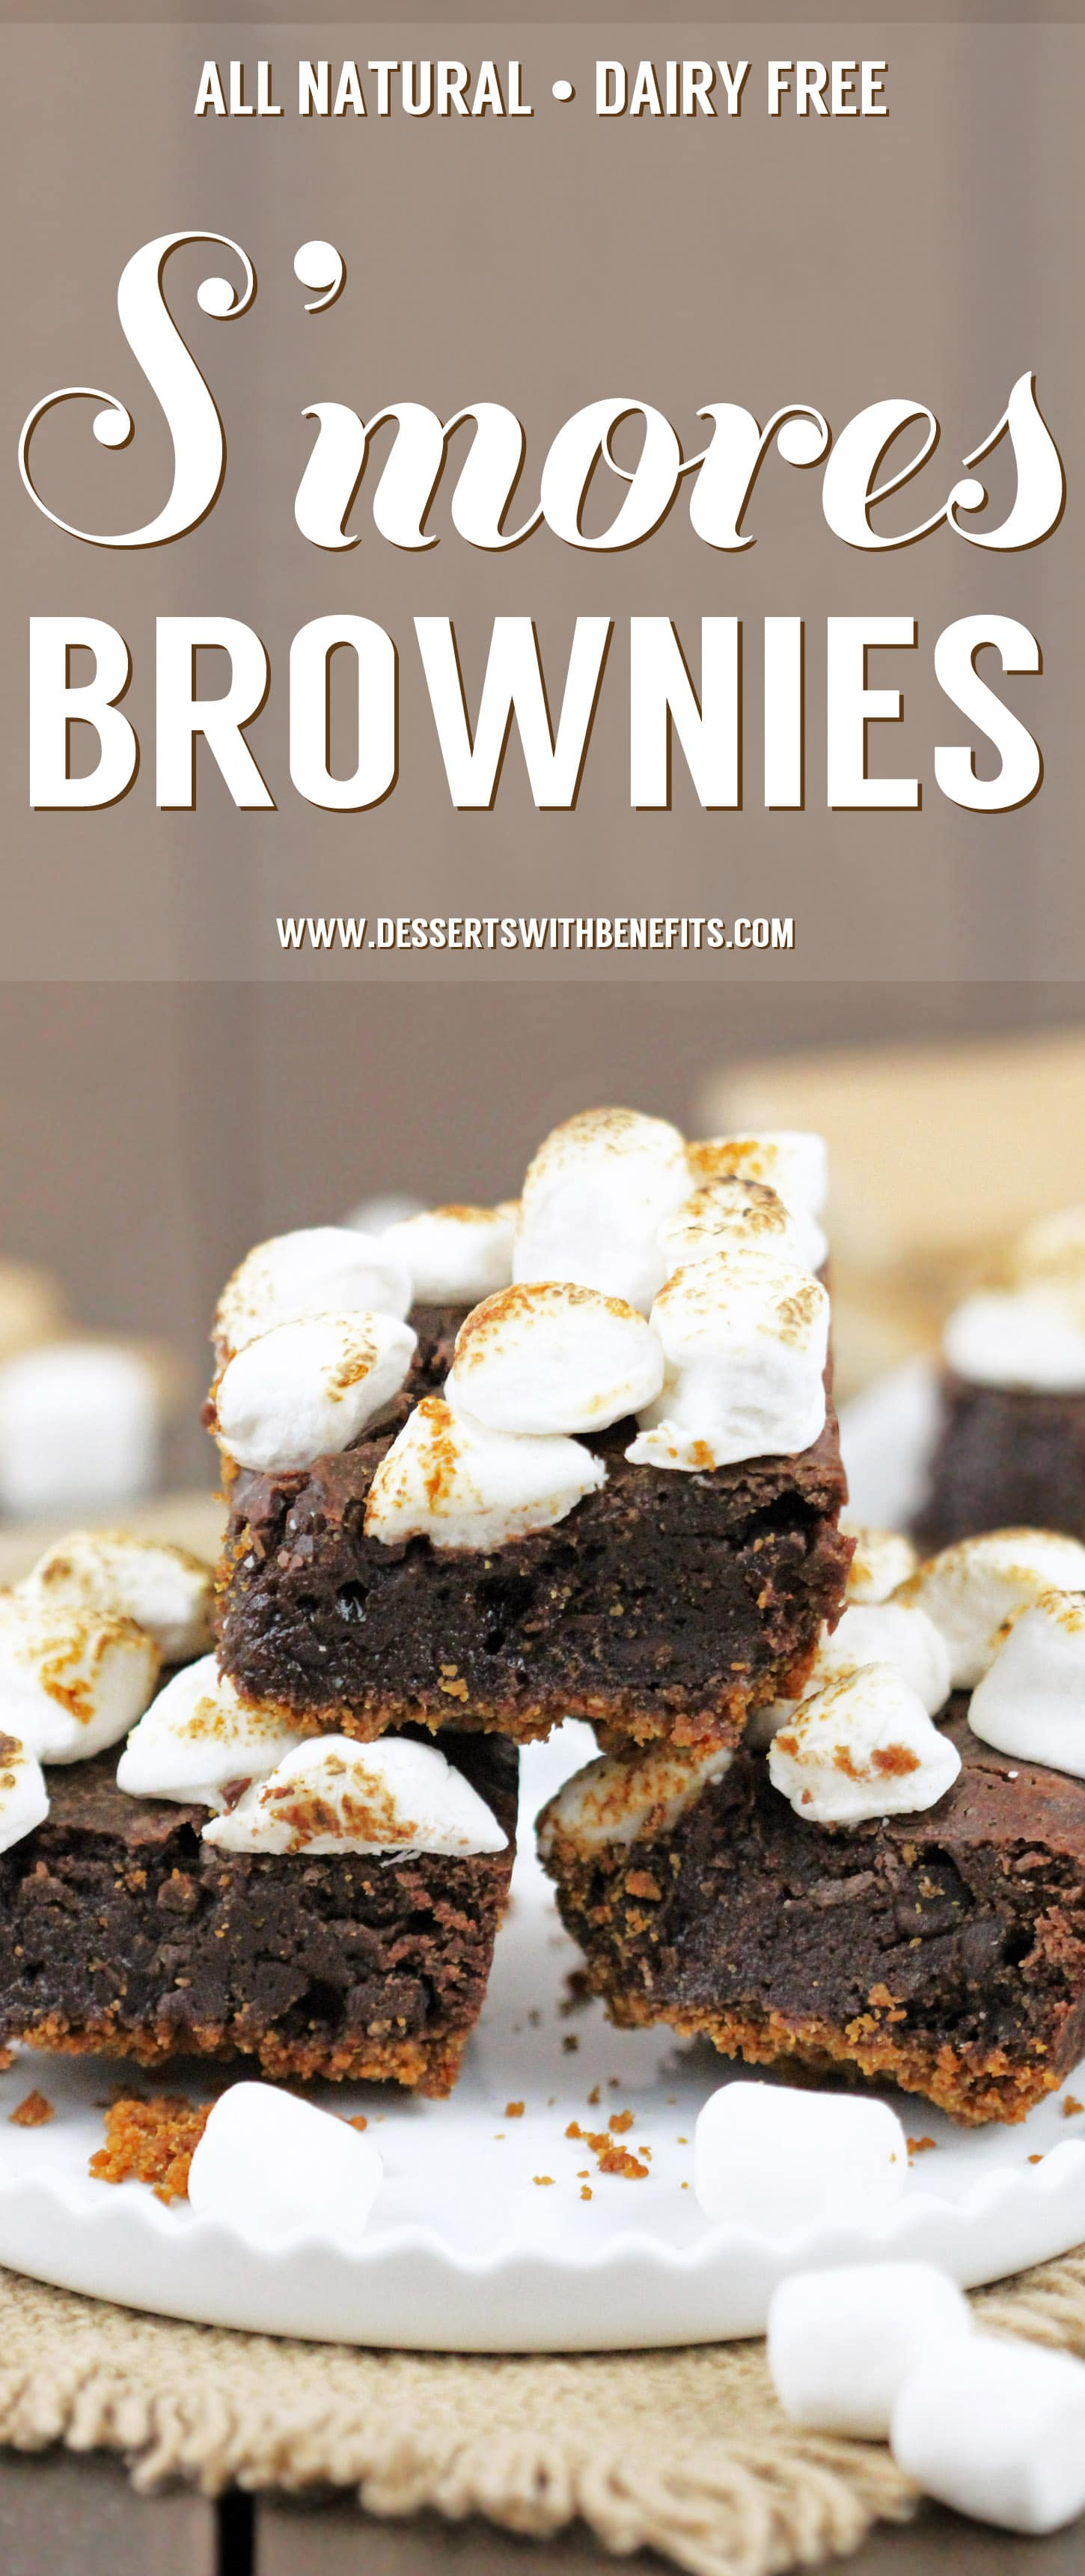 6-ingredient S'mores Brownies! Satisfy your s'mores craving with these delicious brownies. Made with an actual graham cracker crust, fudge brownie filling, and a sweet marshmallow studded topping, every bite is full of salty-sweet graham cracker flavor, decadent chocolate, and toasted mallows. Healthy Dessert Recipes at the Desserts With Benefits Blog (www.DessertsWithBenefits.com)